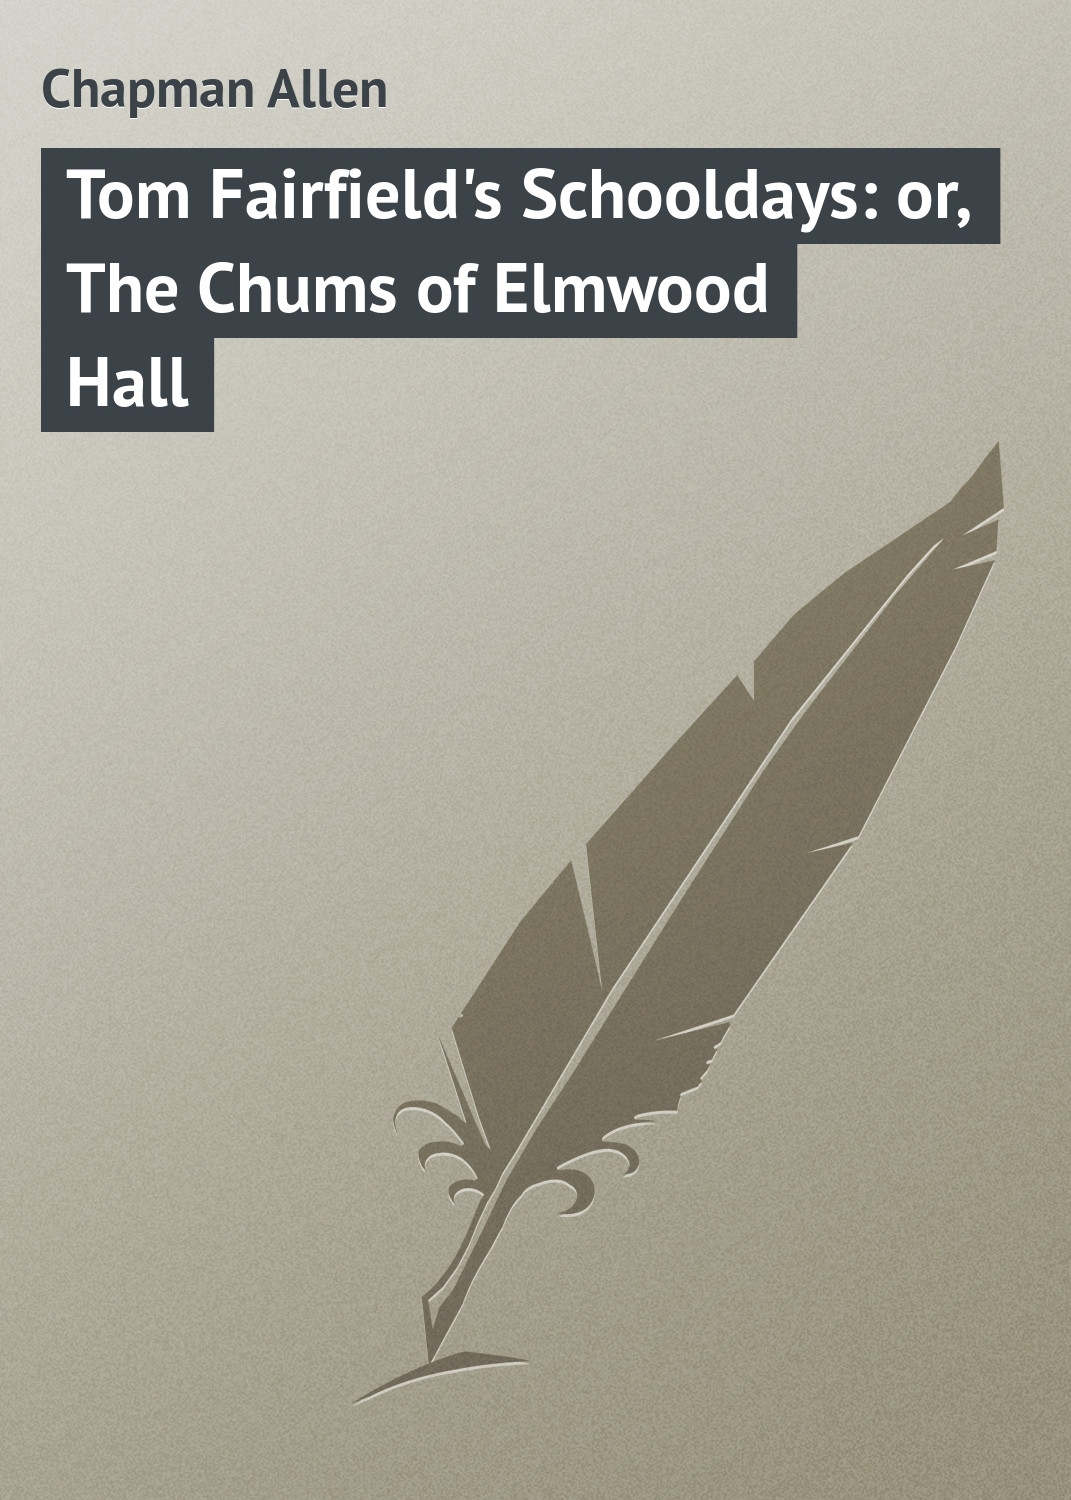 купить Chapman Allen Tom Fairfield's Schooldays: or, The Chums of Elmwood Hall по цене 0 рублей